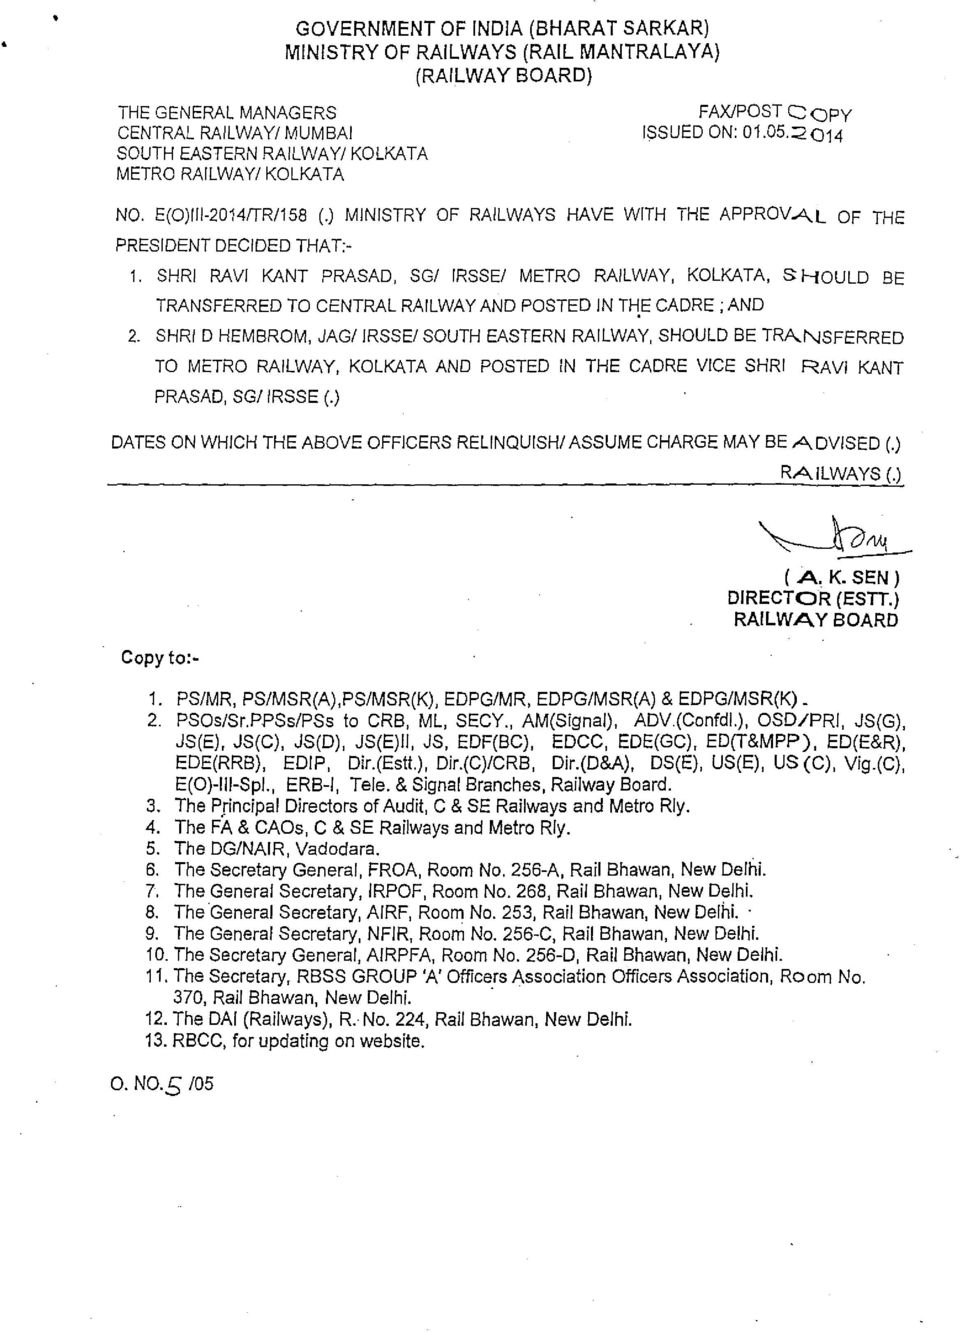 SHRI RAVI KANT PRASAD, SG/ IRSSE/ METRO RAILWAY, KOLKATA, S HOULD BE TRANSFERRED TO CENTRAL RAILWAY AND POSTED IN THE CADRE ; AND 2.